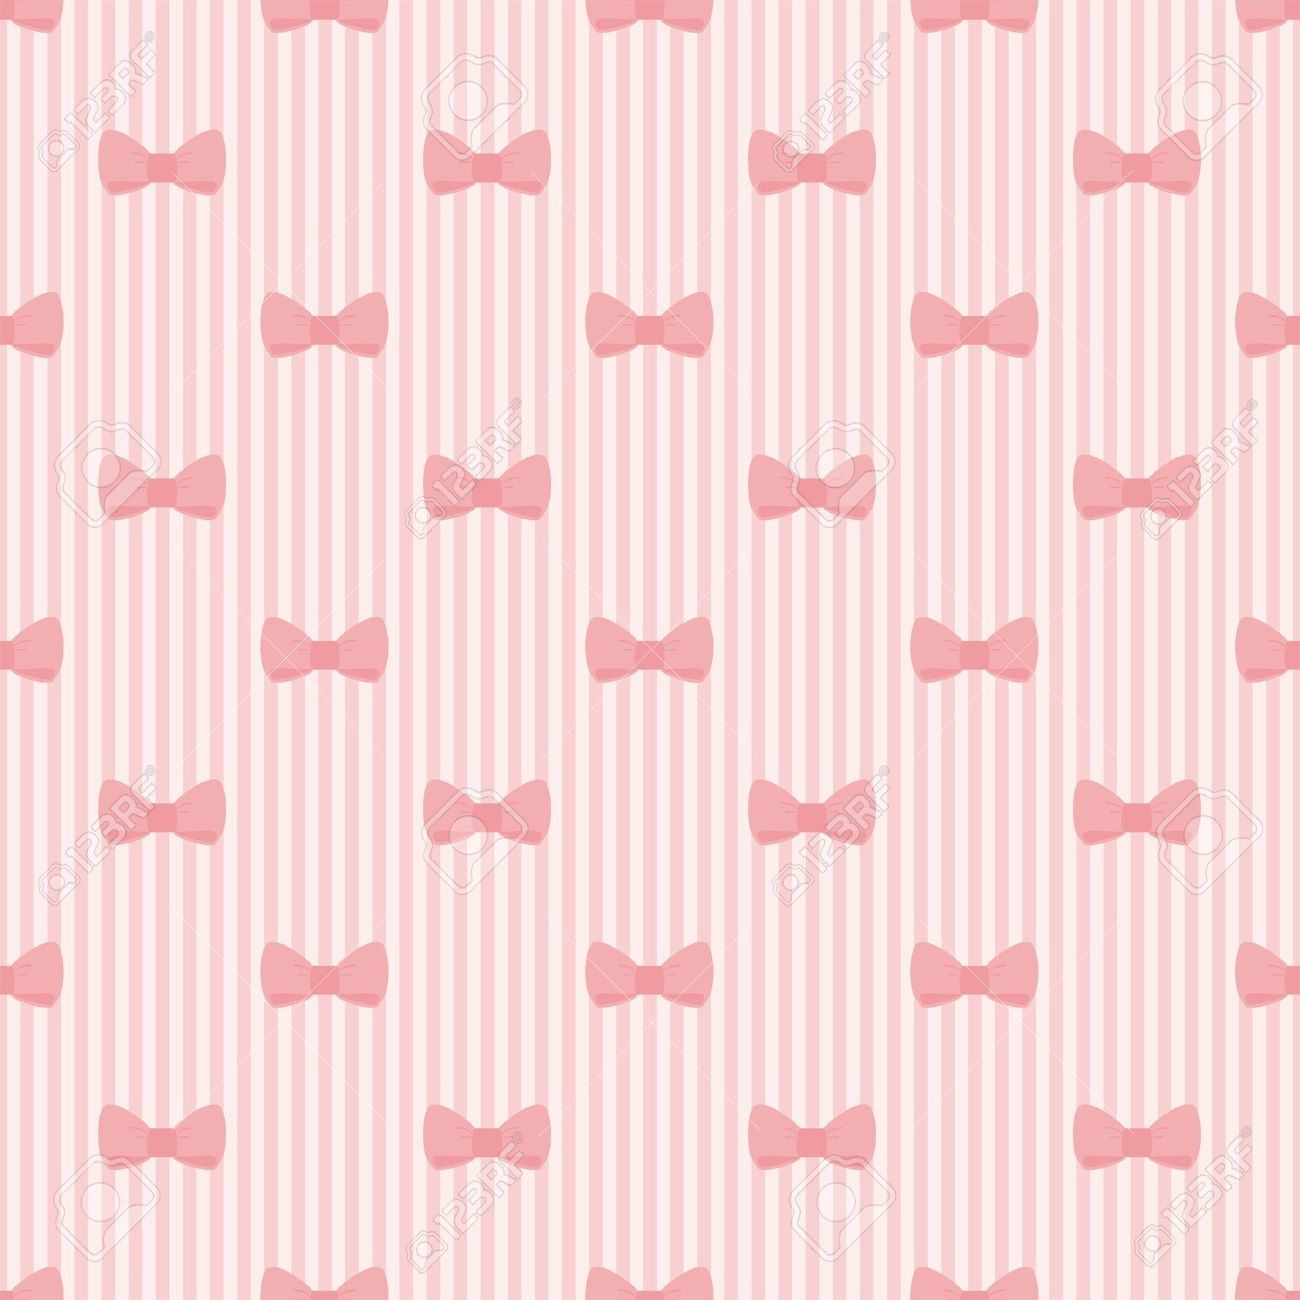 Seamless Pink Bow And Stripes Background Cute Baby Pattern Or